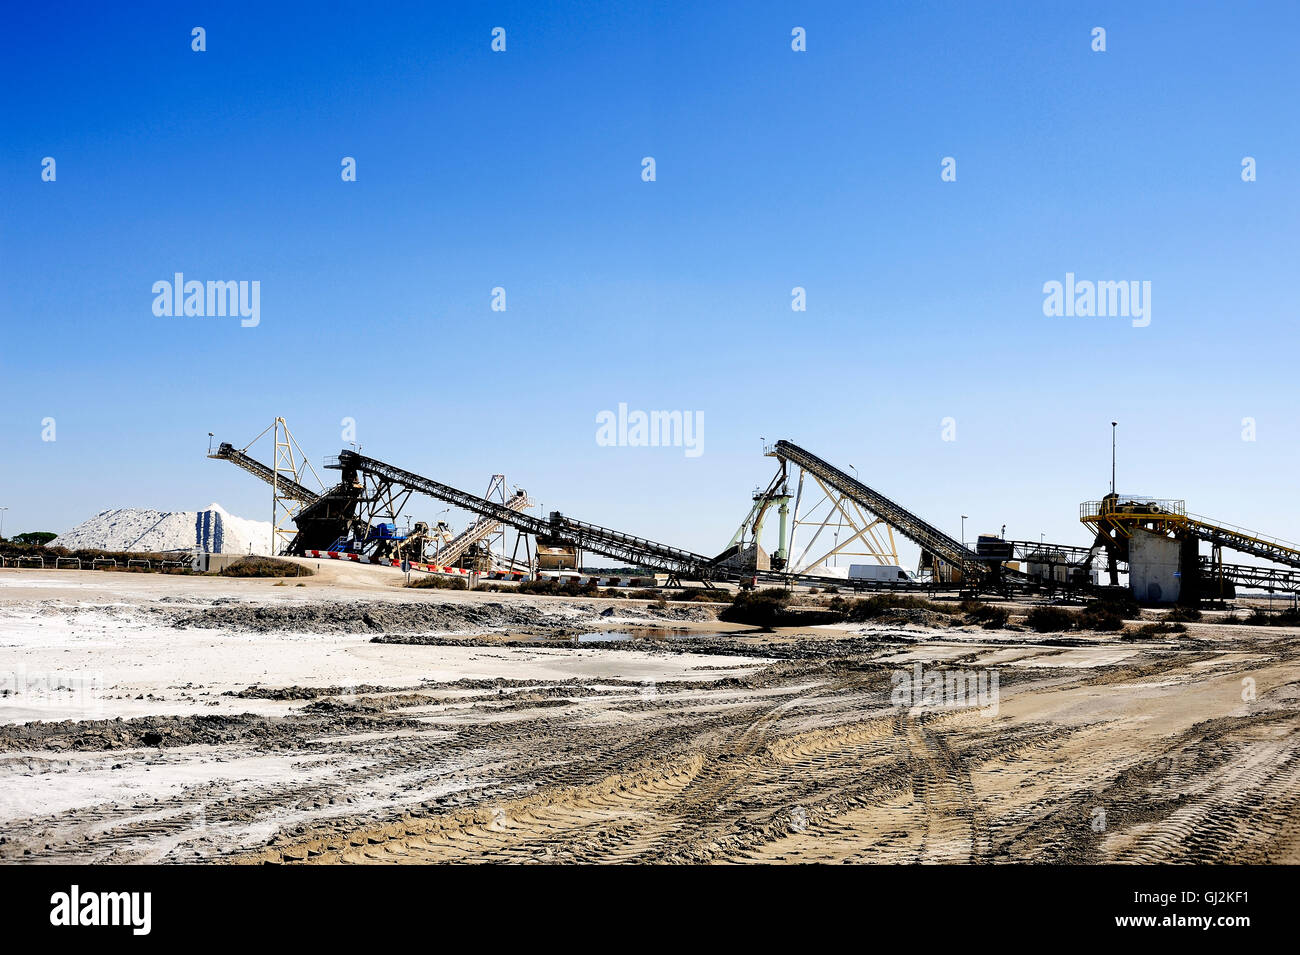 Site operating company saline Aigues-Mortes in the Camargue where stackers stack hills of sea salt. - Stock Image